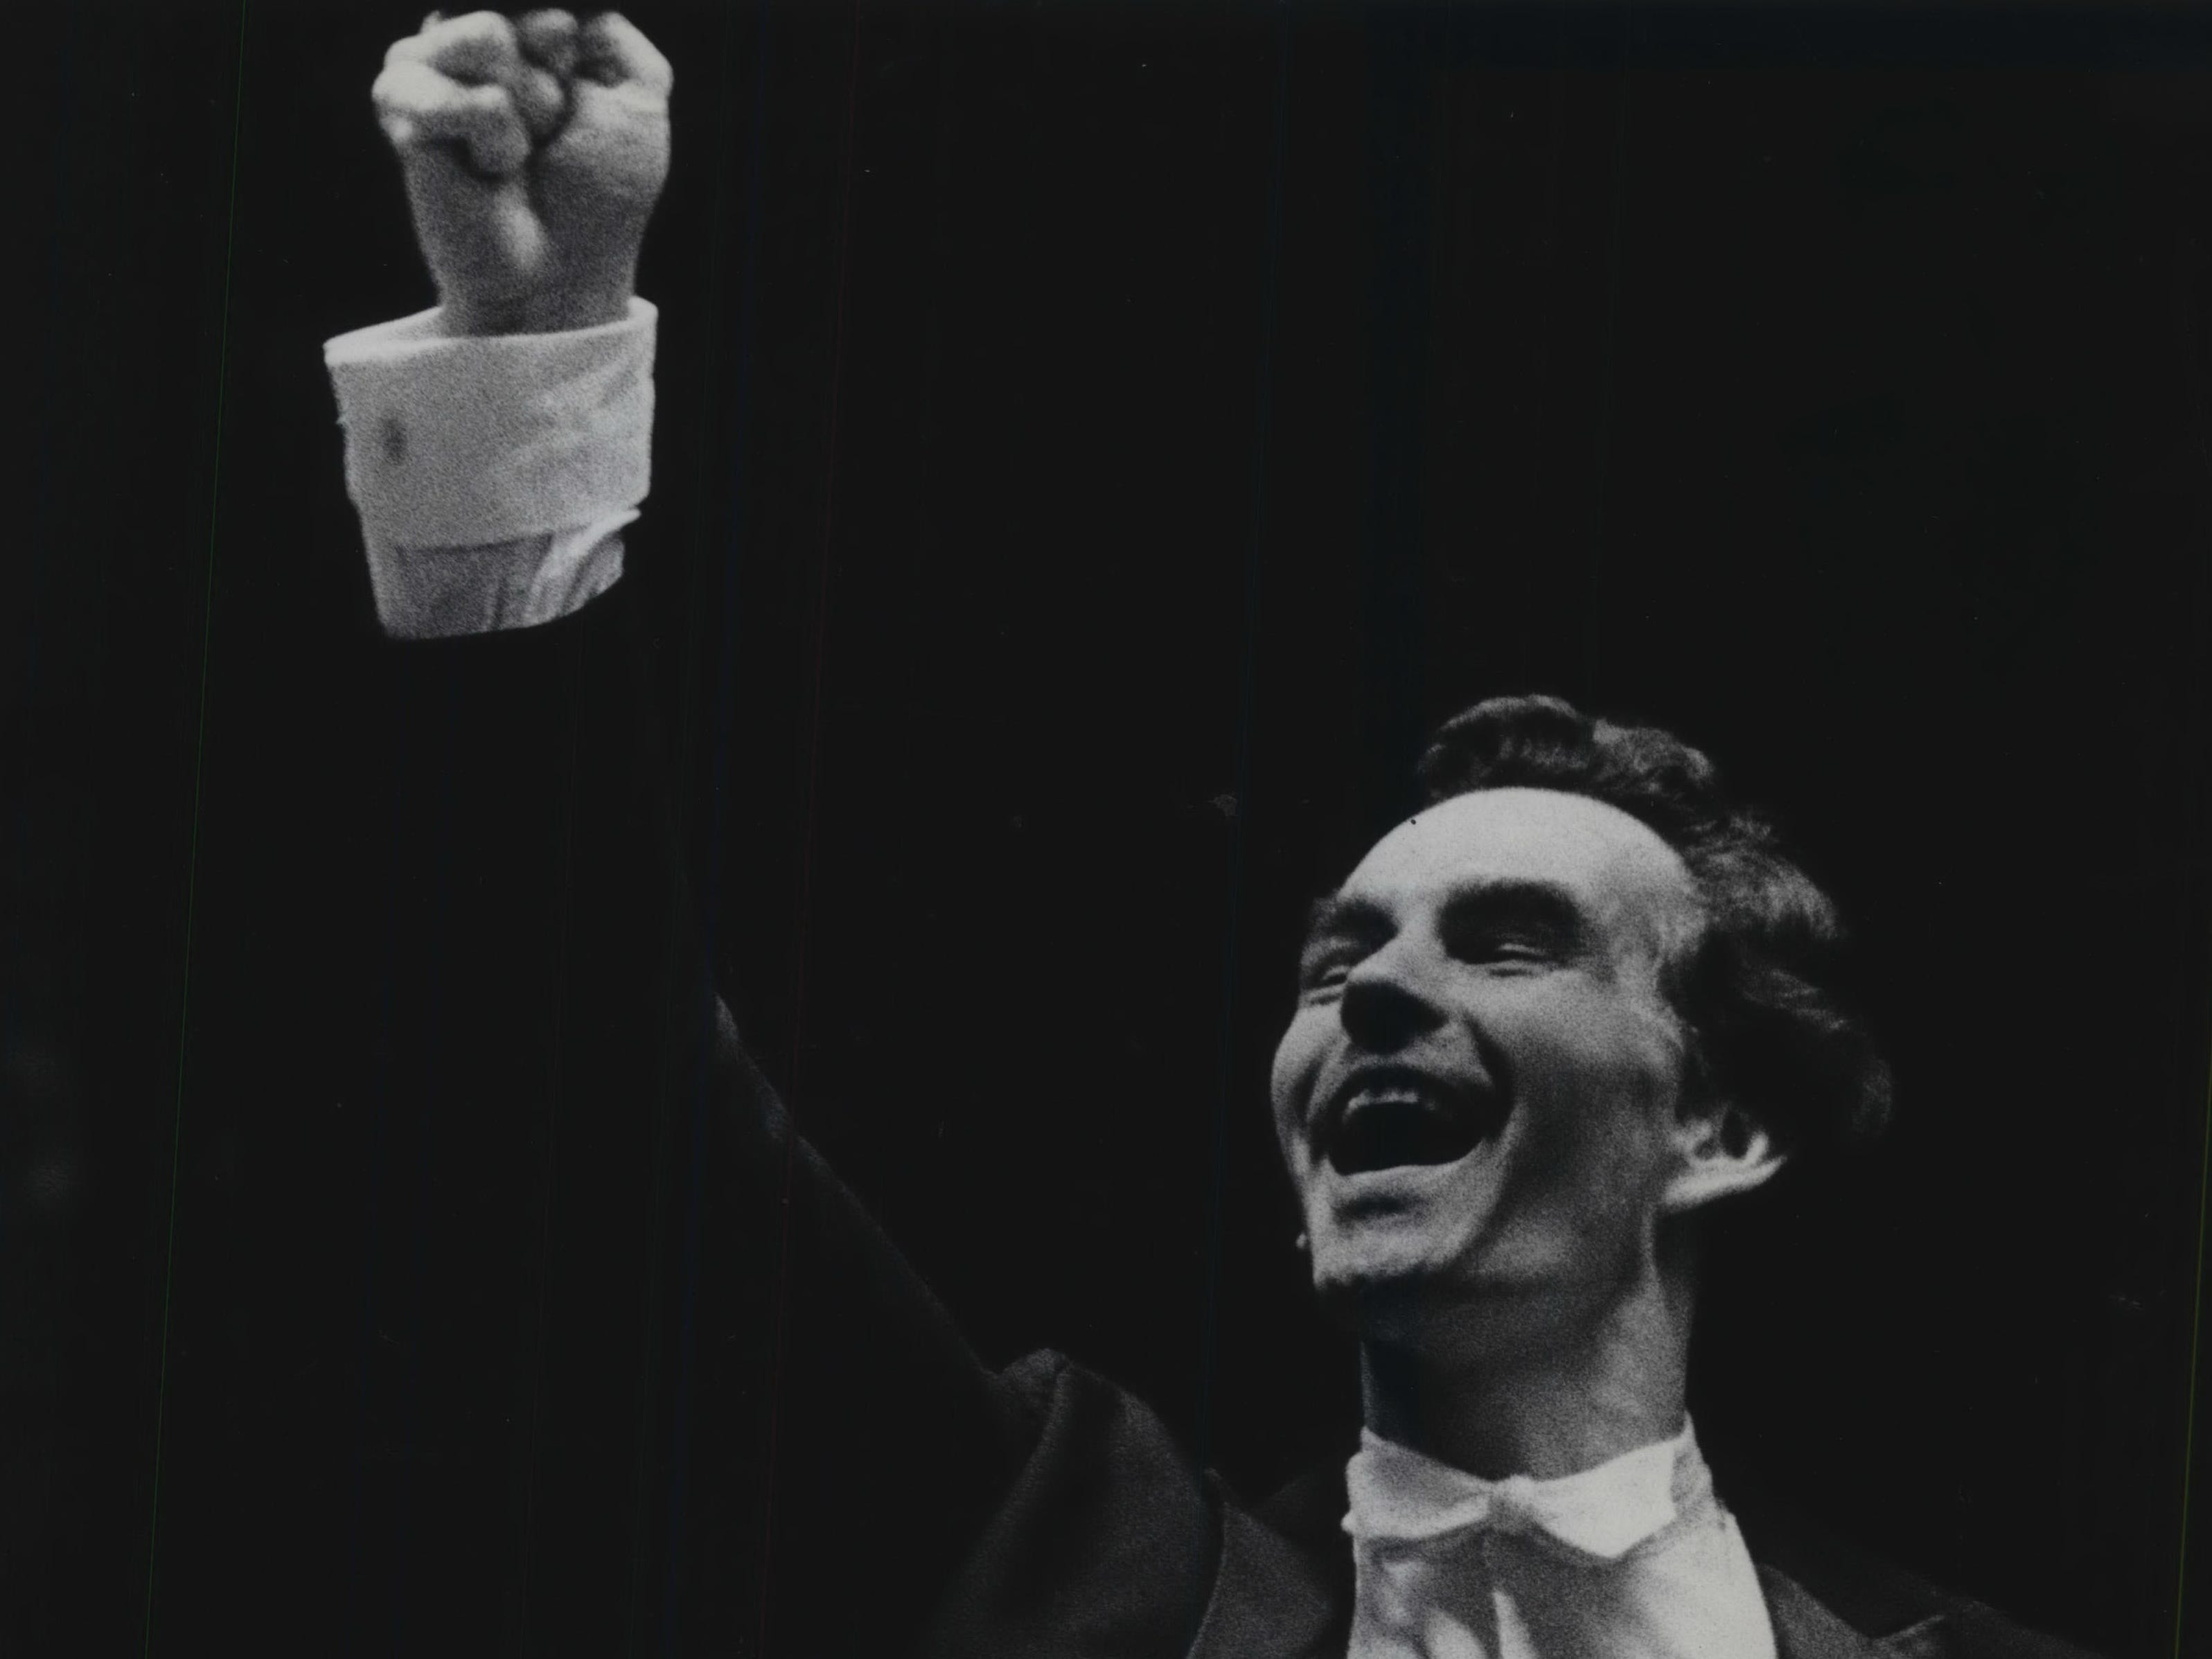 Kenneth Schermerhorn leads the Milwaukee Symphony Orchestra on his first official night as conductor and music director of the symphony, on Sept. 28, 1968. This photo was published in the Sept. 30, 1968, Milwaukee Journal.